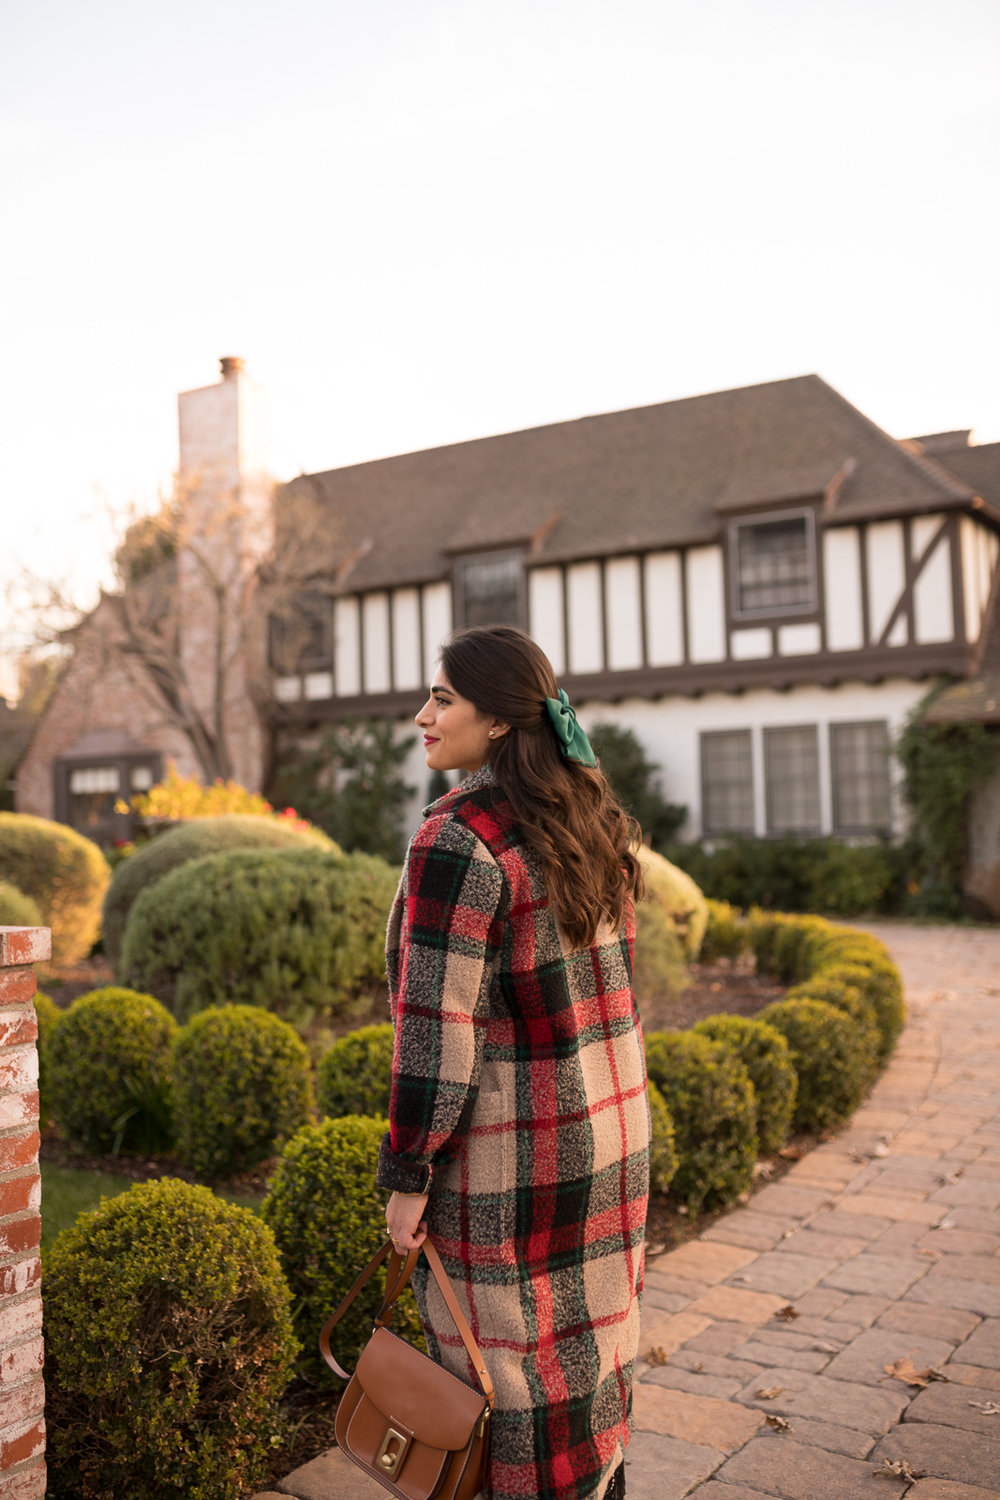 Plaid Coat & Green Bow for Fall or winter